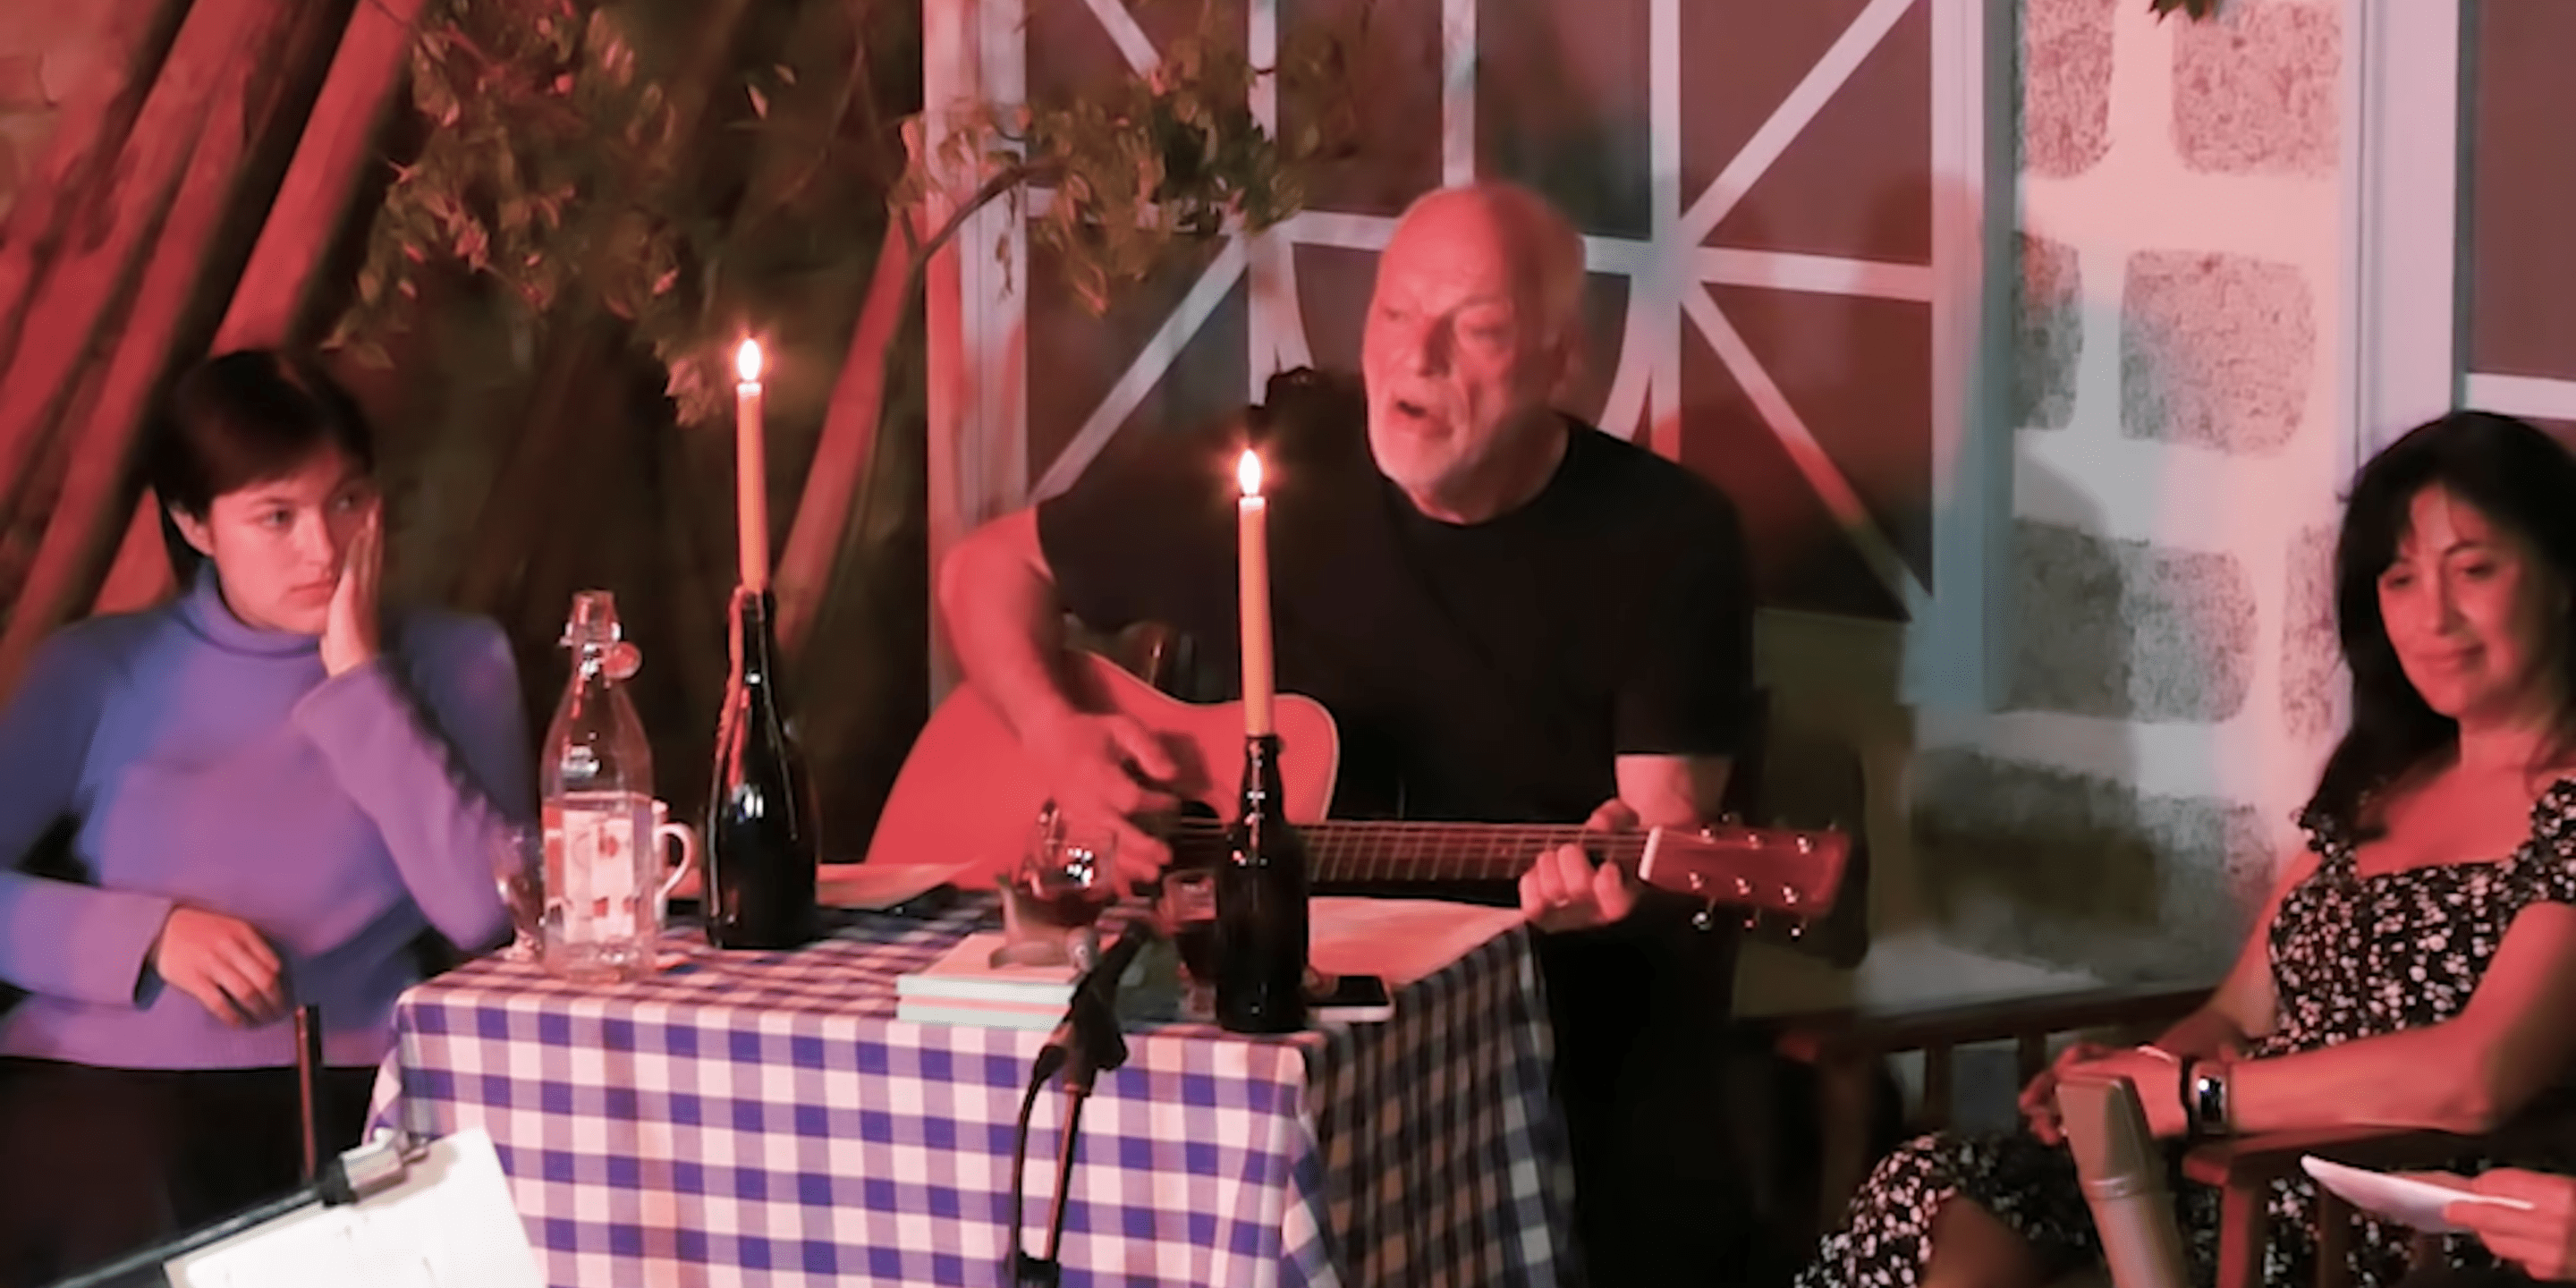 David Gilmour Covers Syd Barrett During Family Live Stream [Watch]